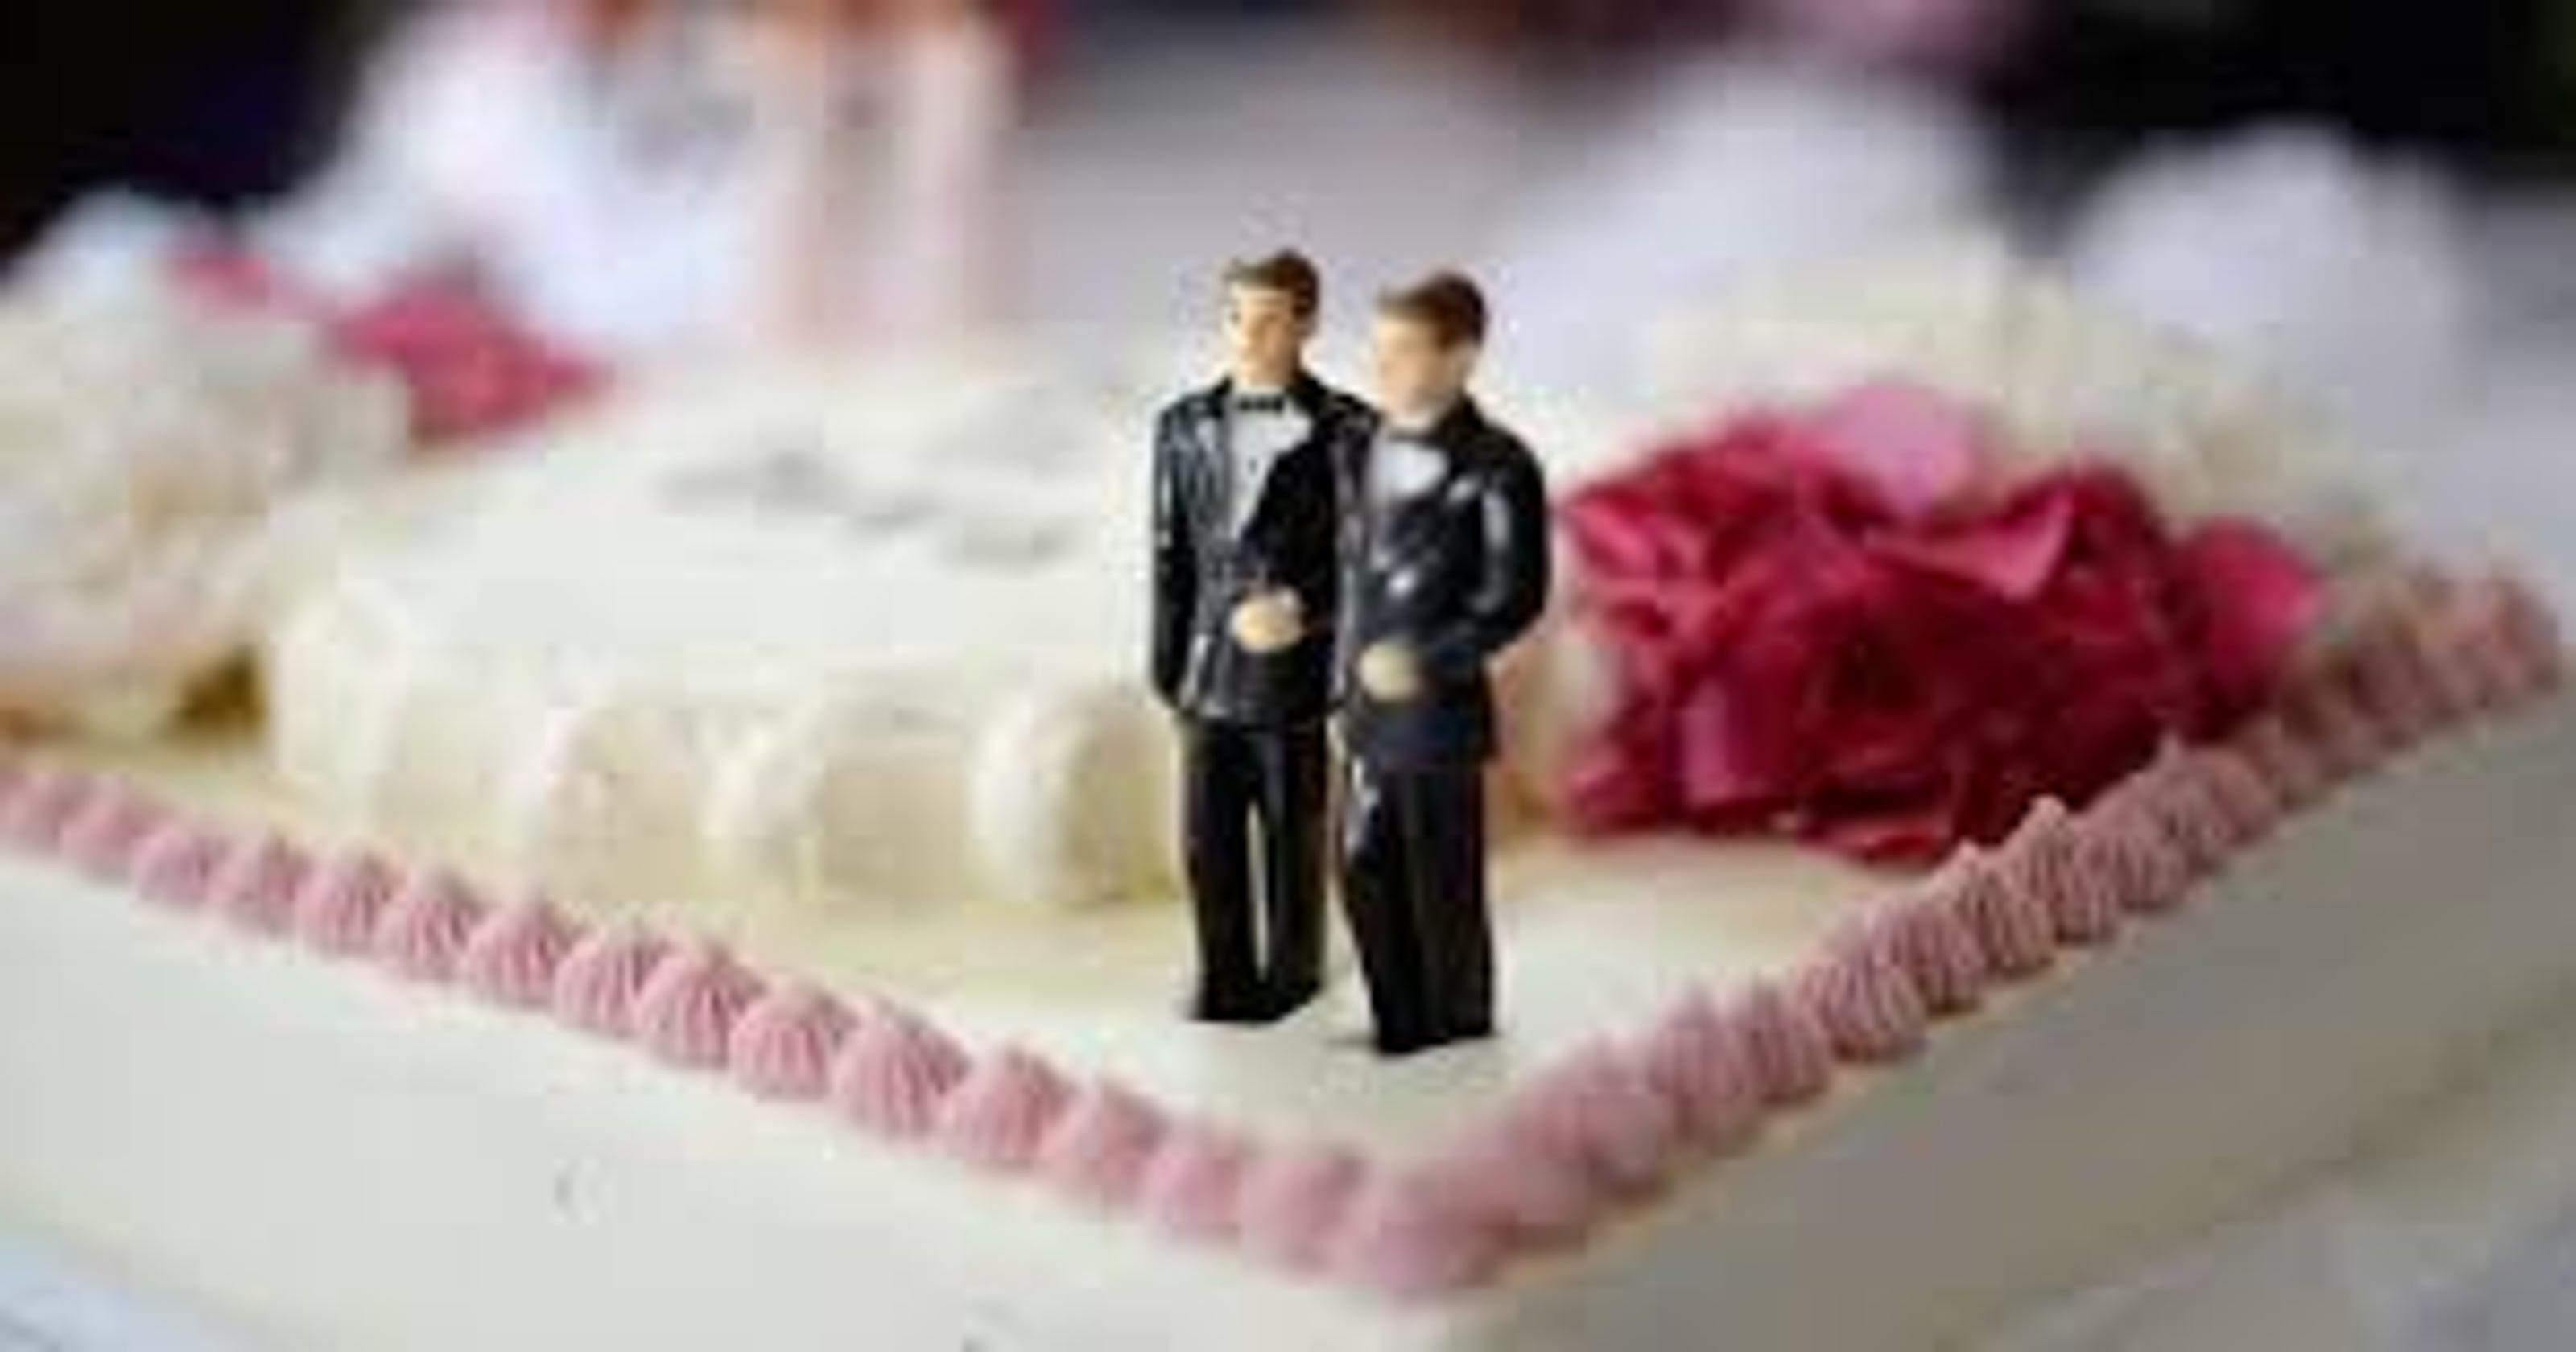 Wedding Cake Supreme Court.Supreme Court Gay Wedding Cake Decision May Be A Short Lived Victory